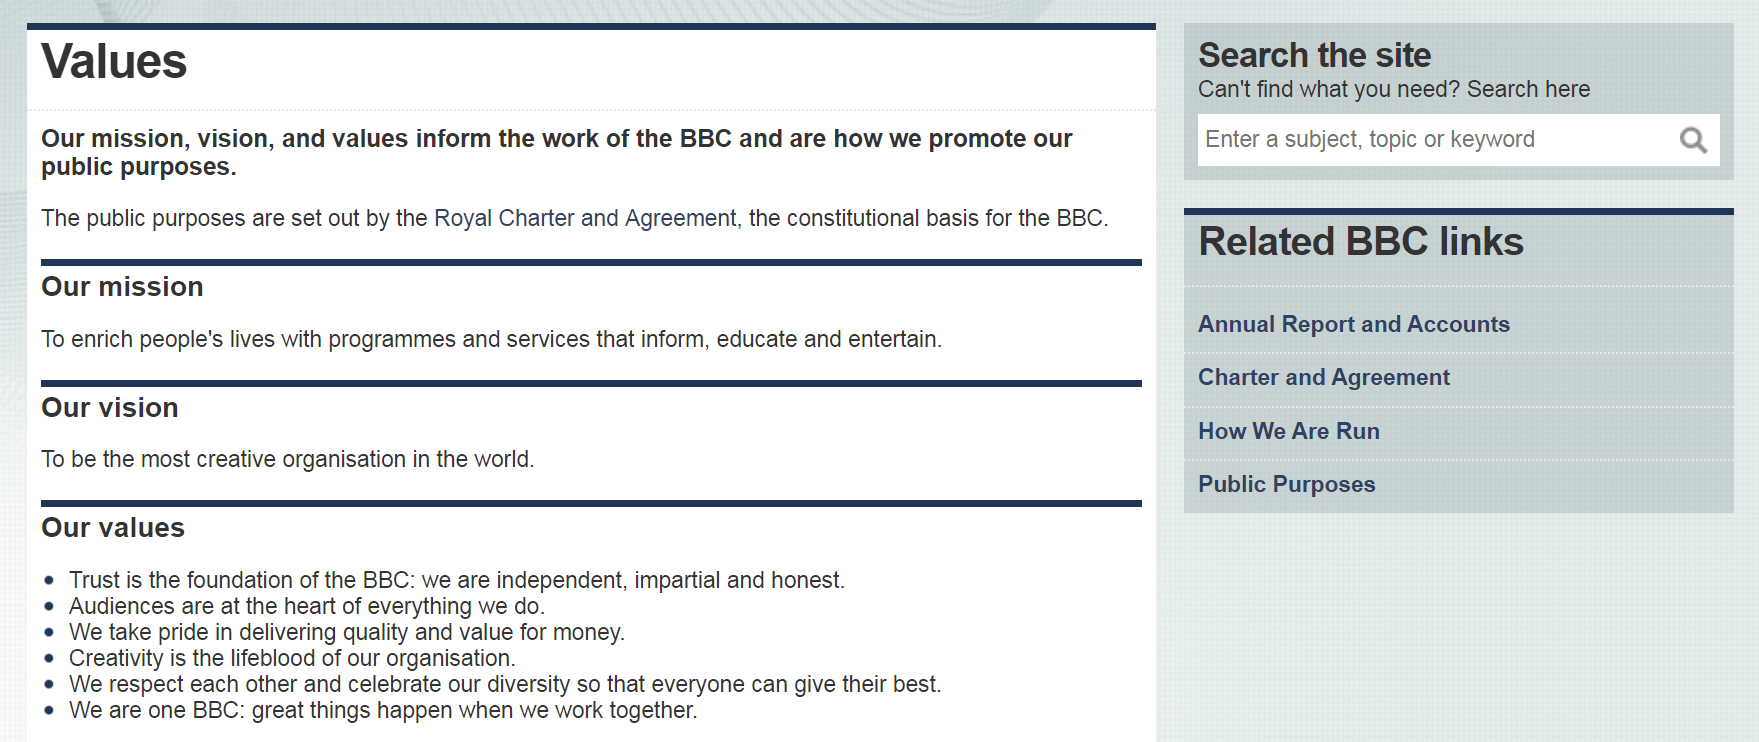 The BBC's mission statement and core values.